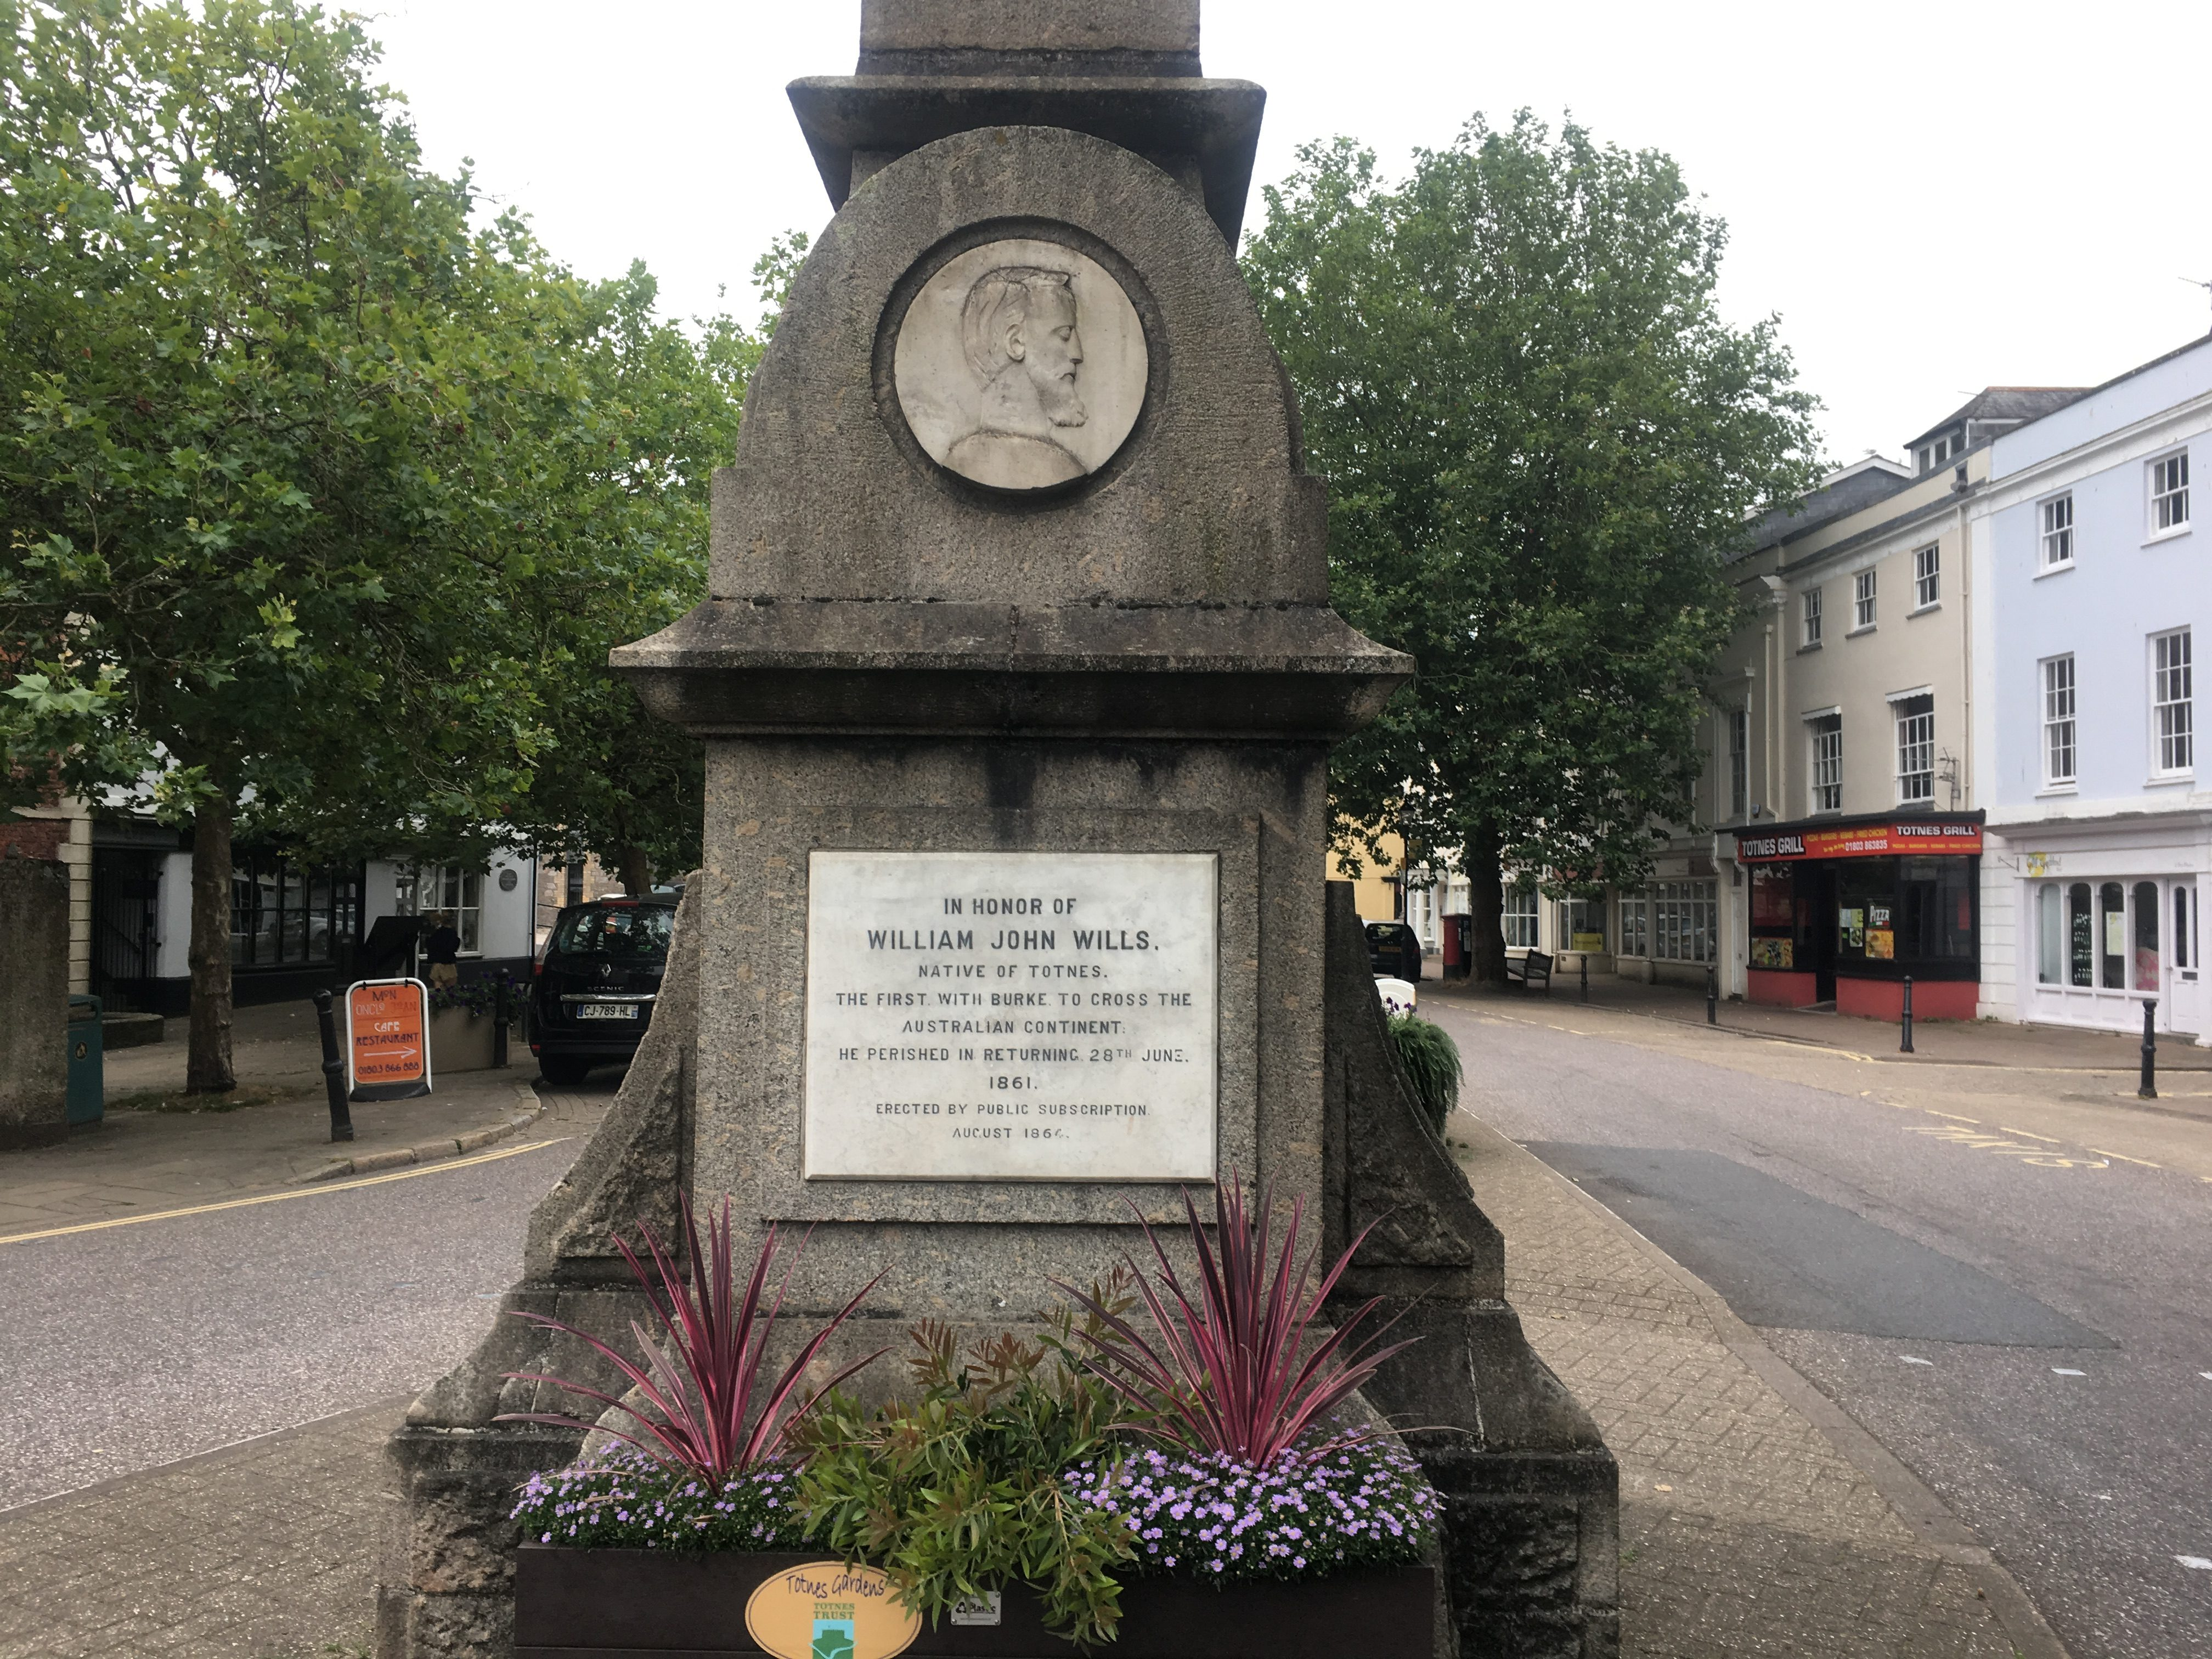 Totnes is famous for many things - for an Australian - Wills! From Bourke and ...